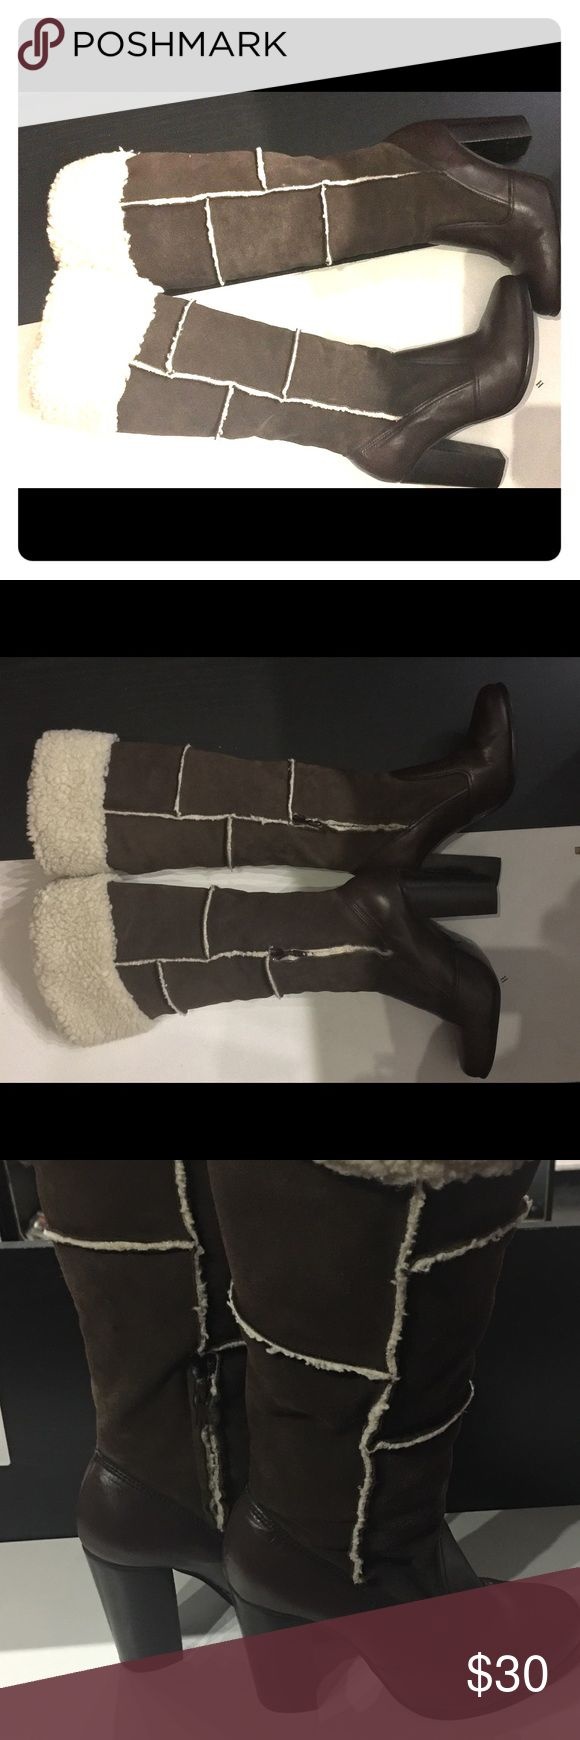 COLIN STUART LEATHER AND SUEDE BOOTS ❤️❤️❤️❤️ Lovely boots gently used worn twicehas a few wrinkles at the middle of boots by toe but I think that's the give on the leather other then that in tact Colin Stuart Shoes Over the Knee Boots